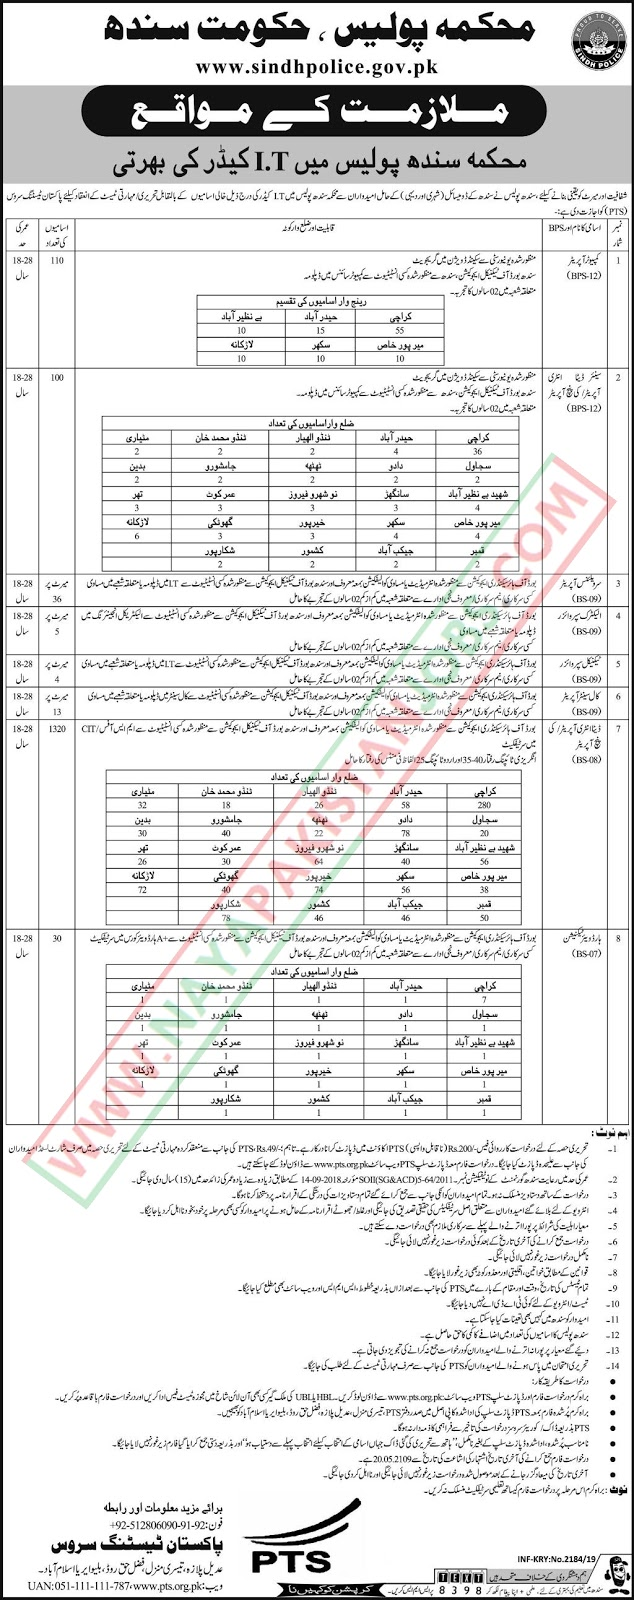 Sindh Police Department Jobs 2019 May - Sindhpolice.gov.pk